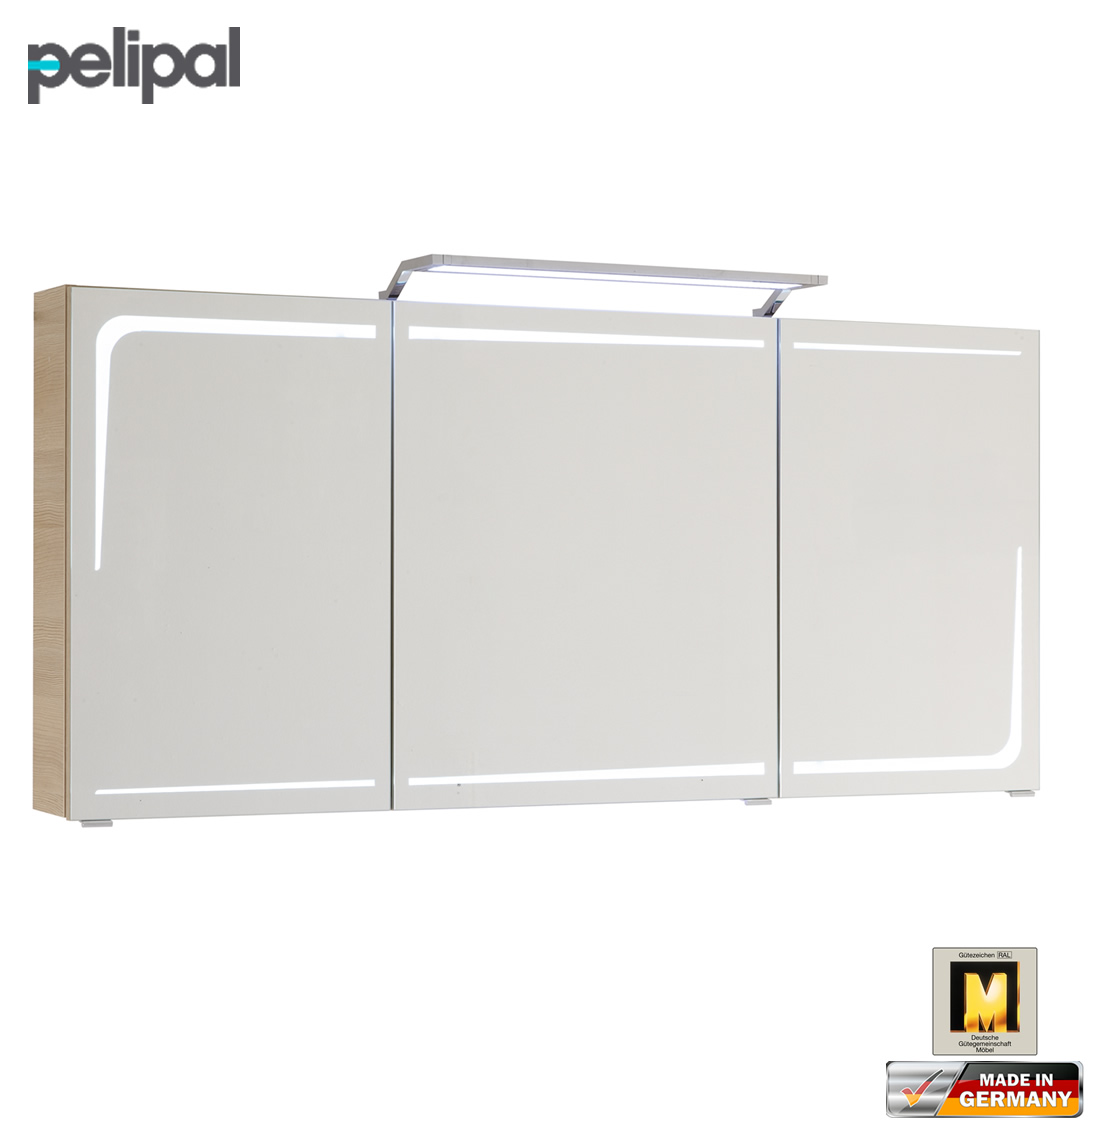 pelipal solitaire 7005 spiegelschrank 150 cm rd sps 06. Black Bedroom Furniture Sets. Home Design Ideas